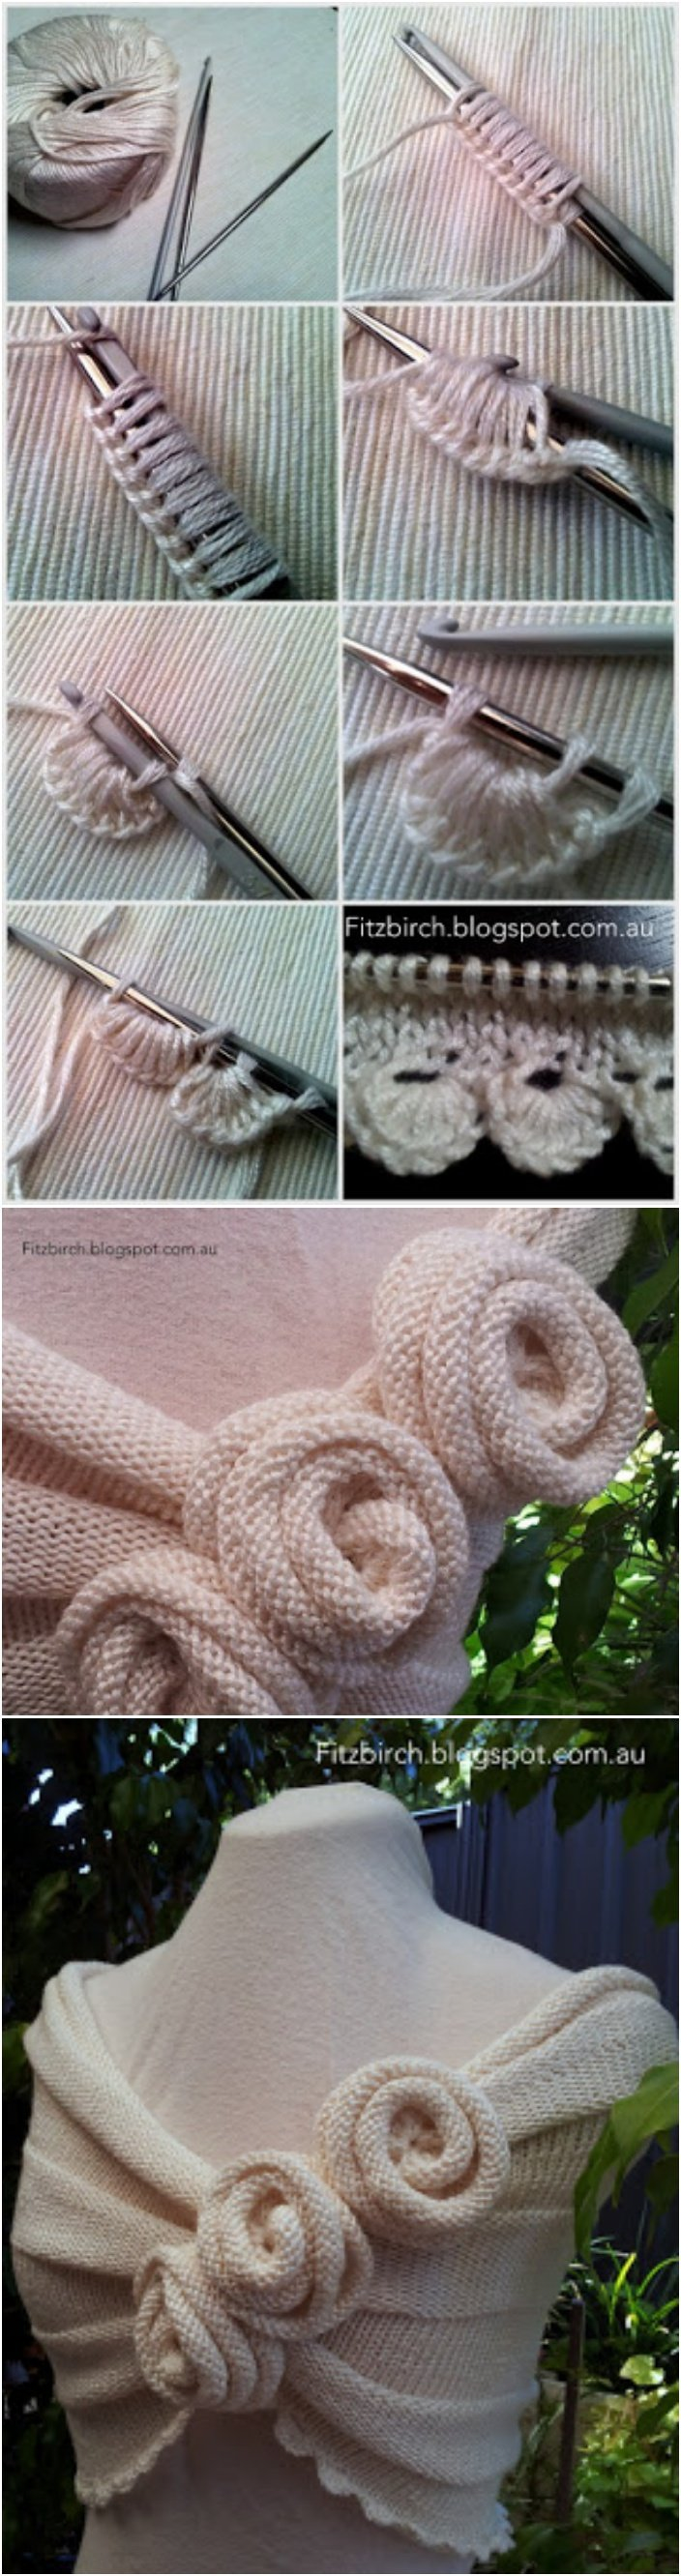 Knitting Summer Rose Capelet with Tutorial